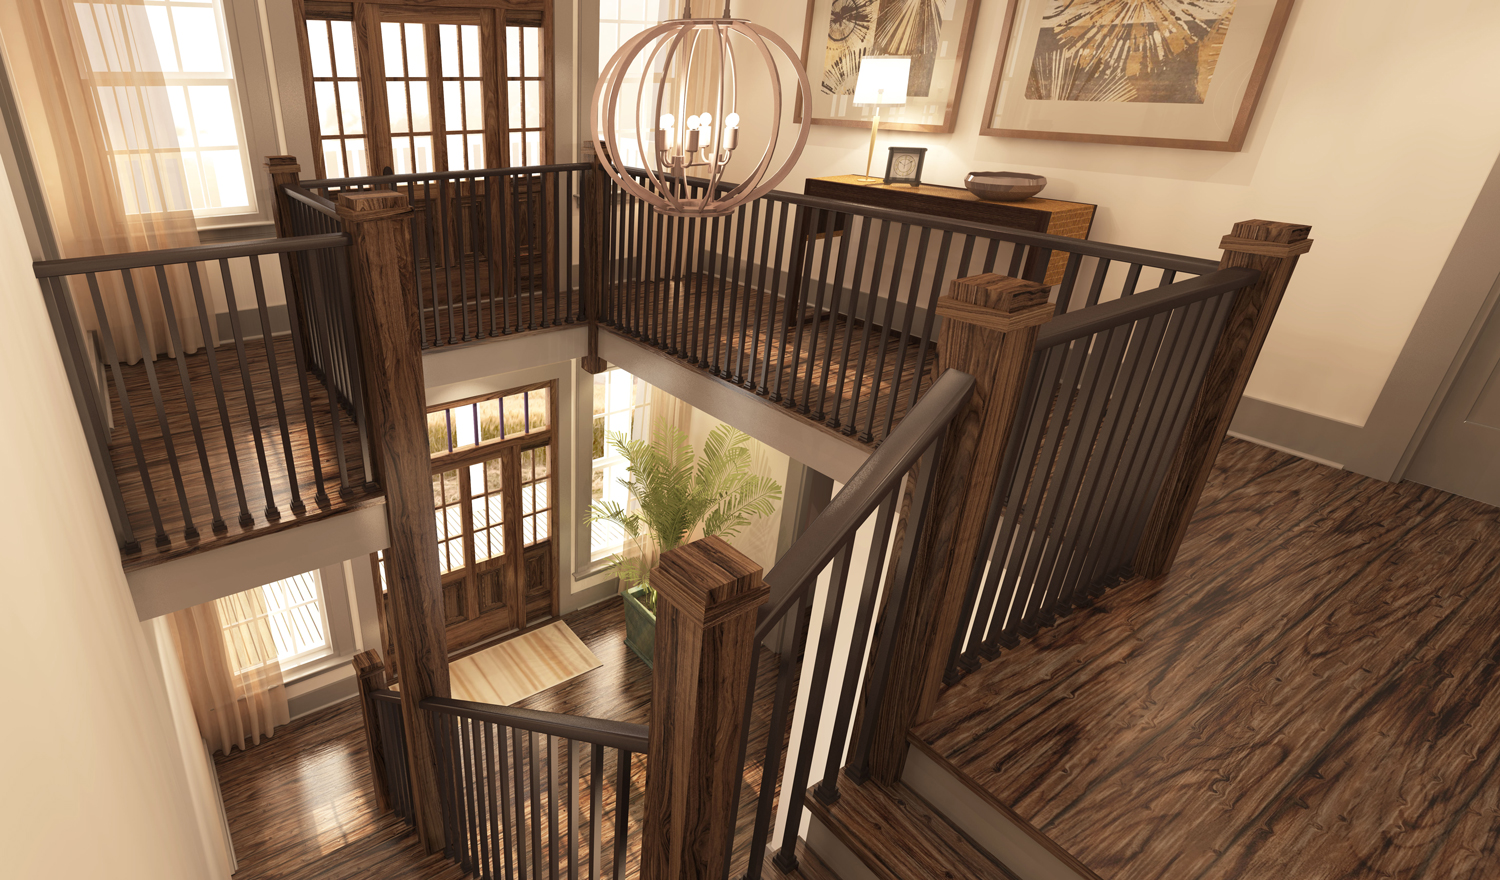 Designed by Foshee Architecture – Private Residence 2 Front Foyer